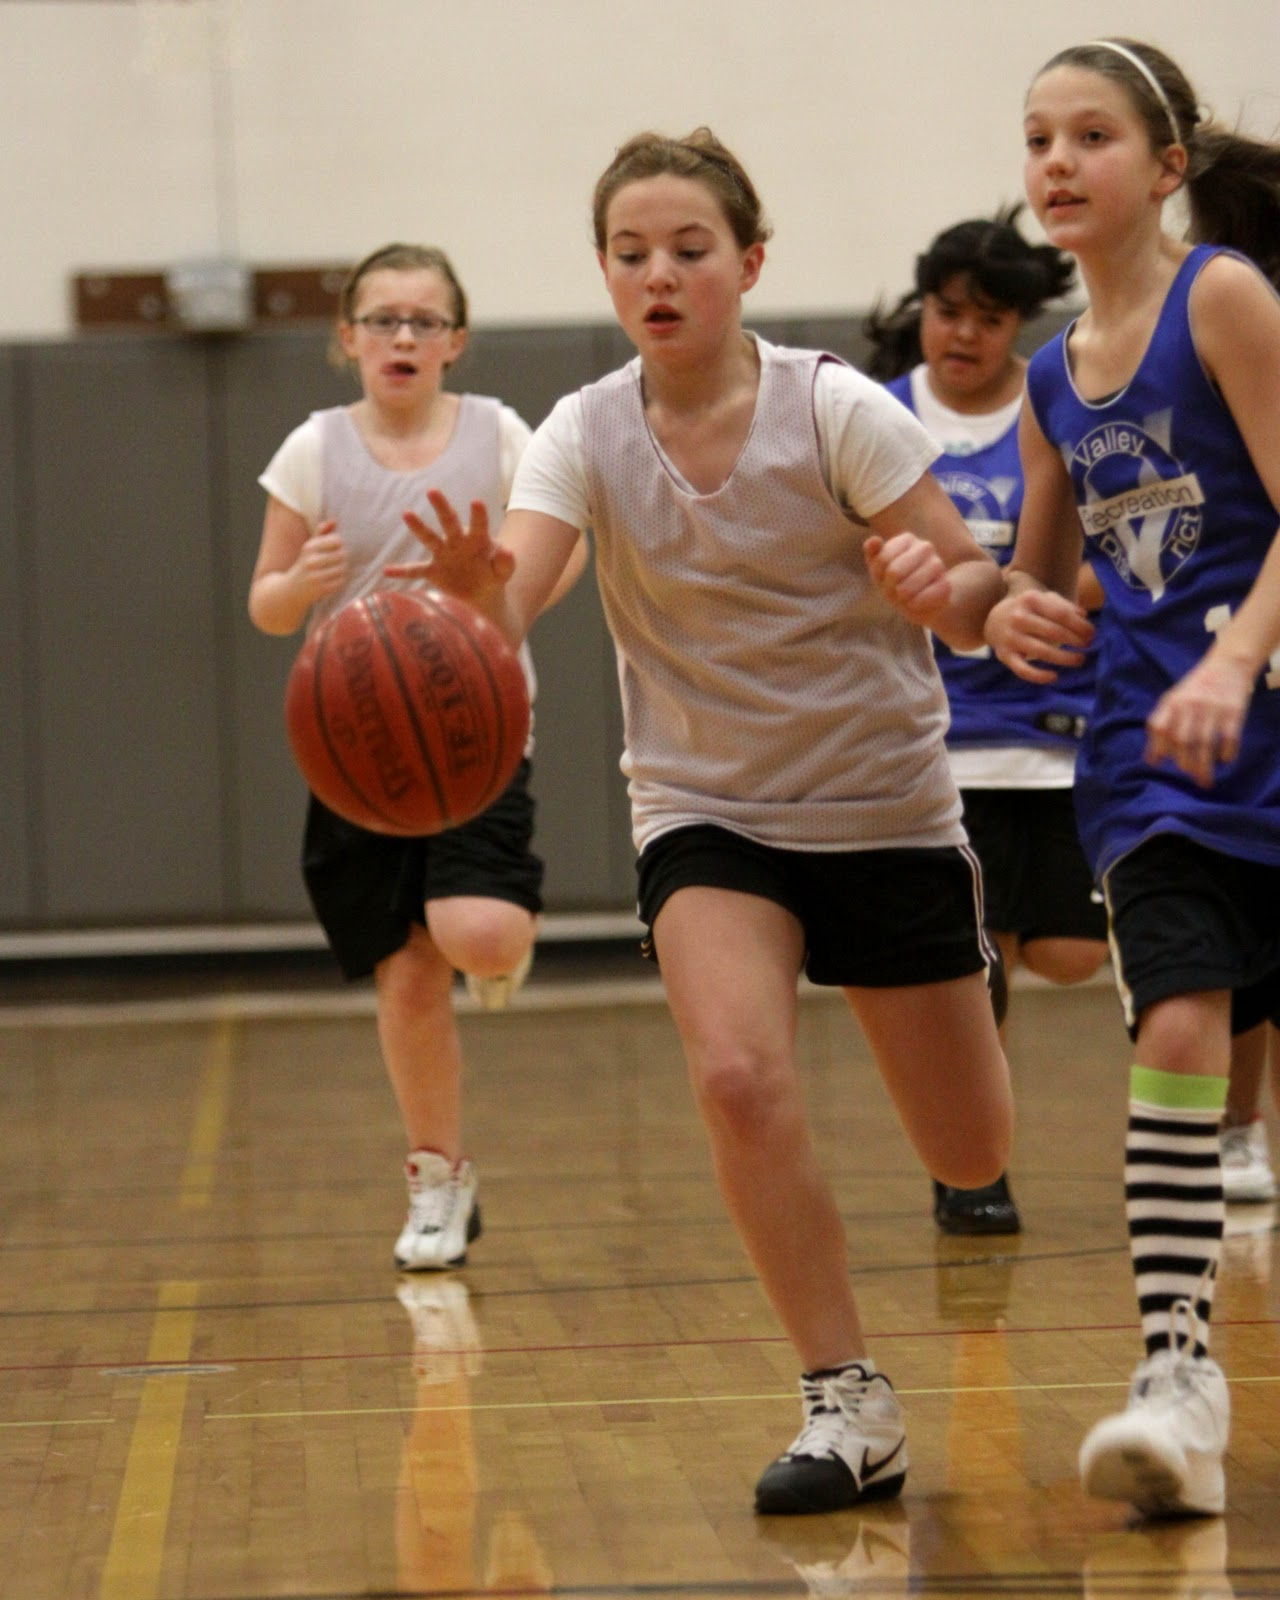 Shoshone Youth Activities And Sports 5th And 6th Grade